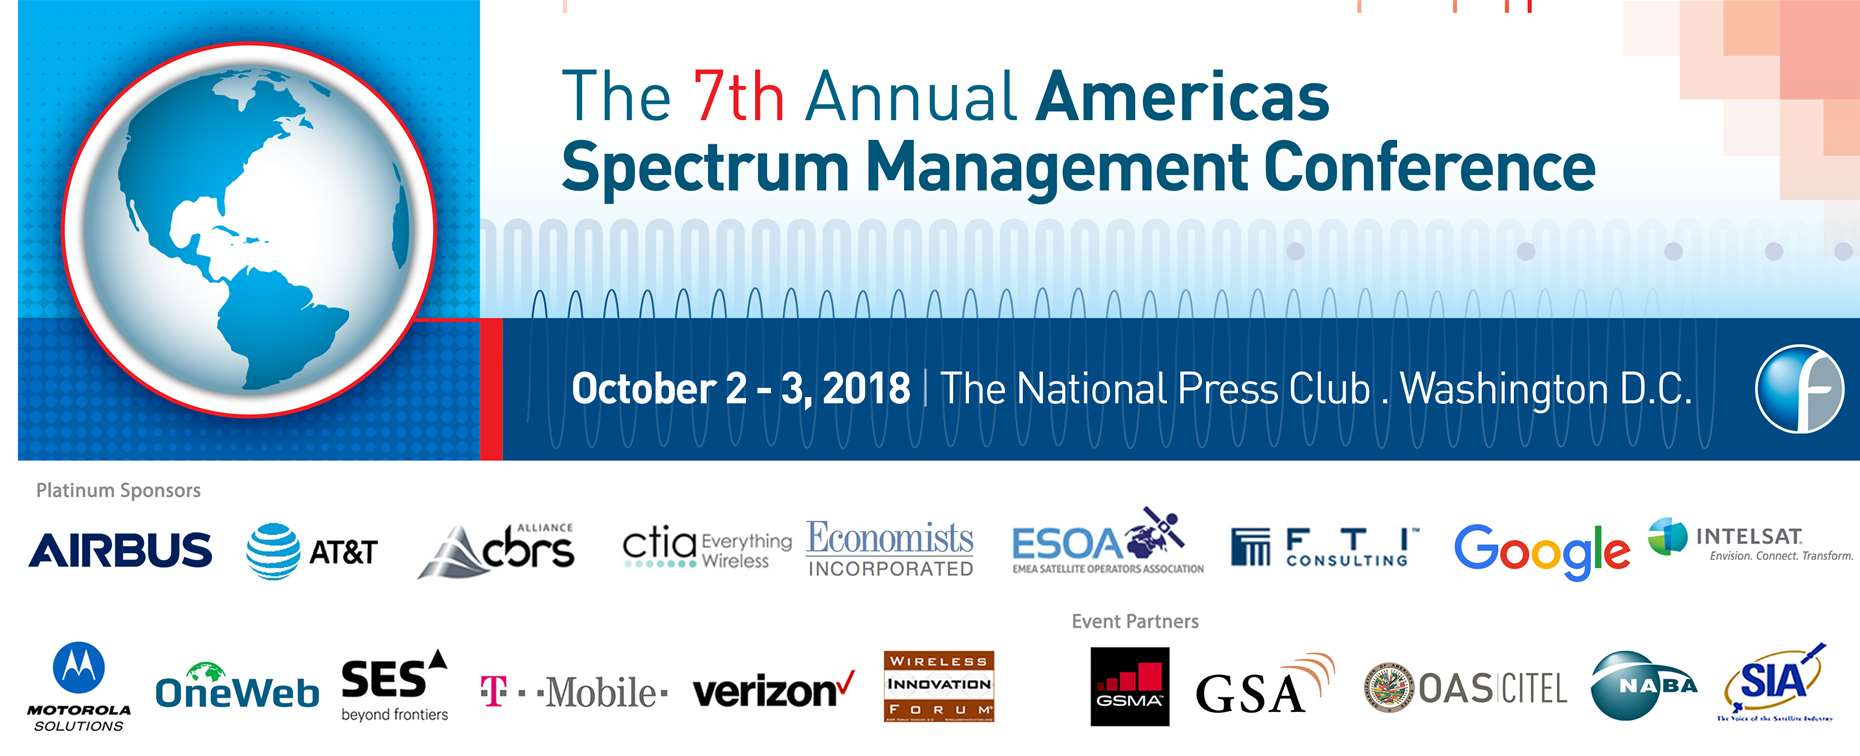 The 7th Annual Americas Spectrum Management Conference